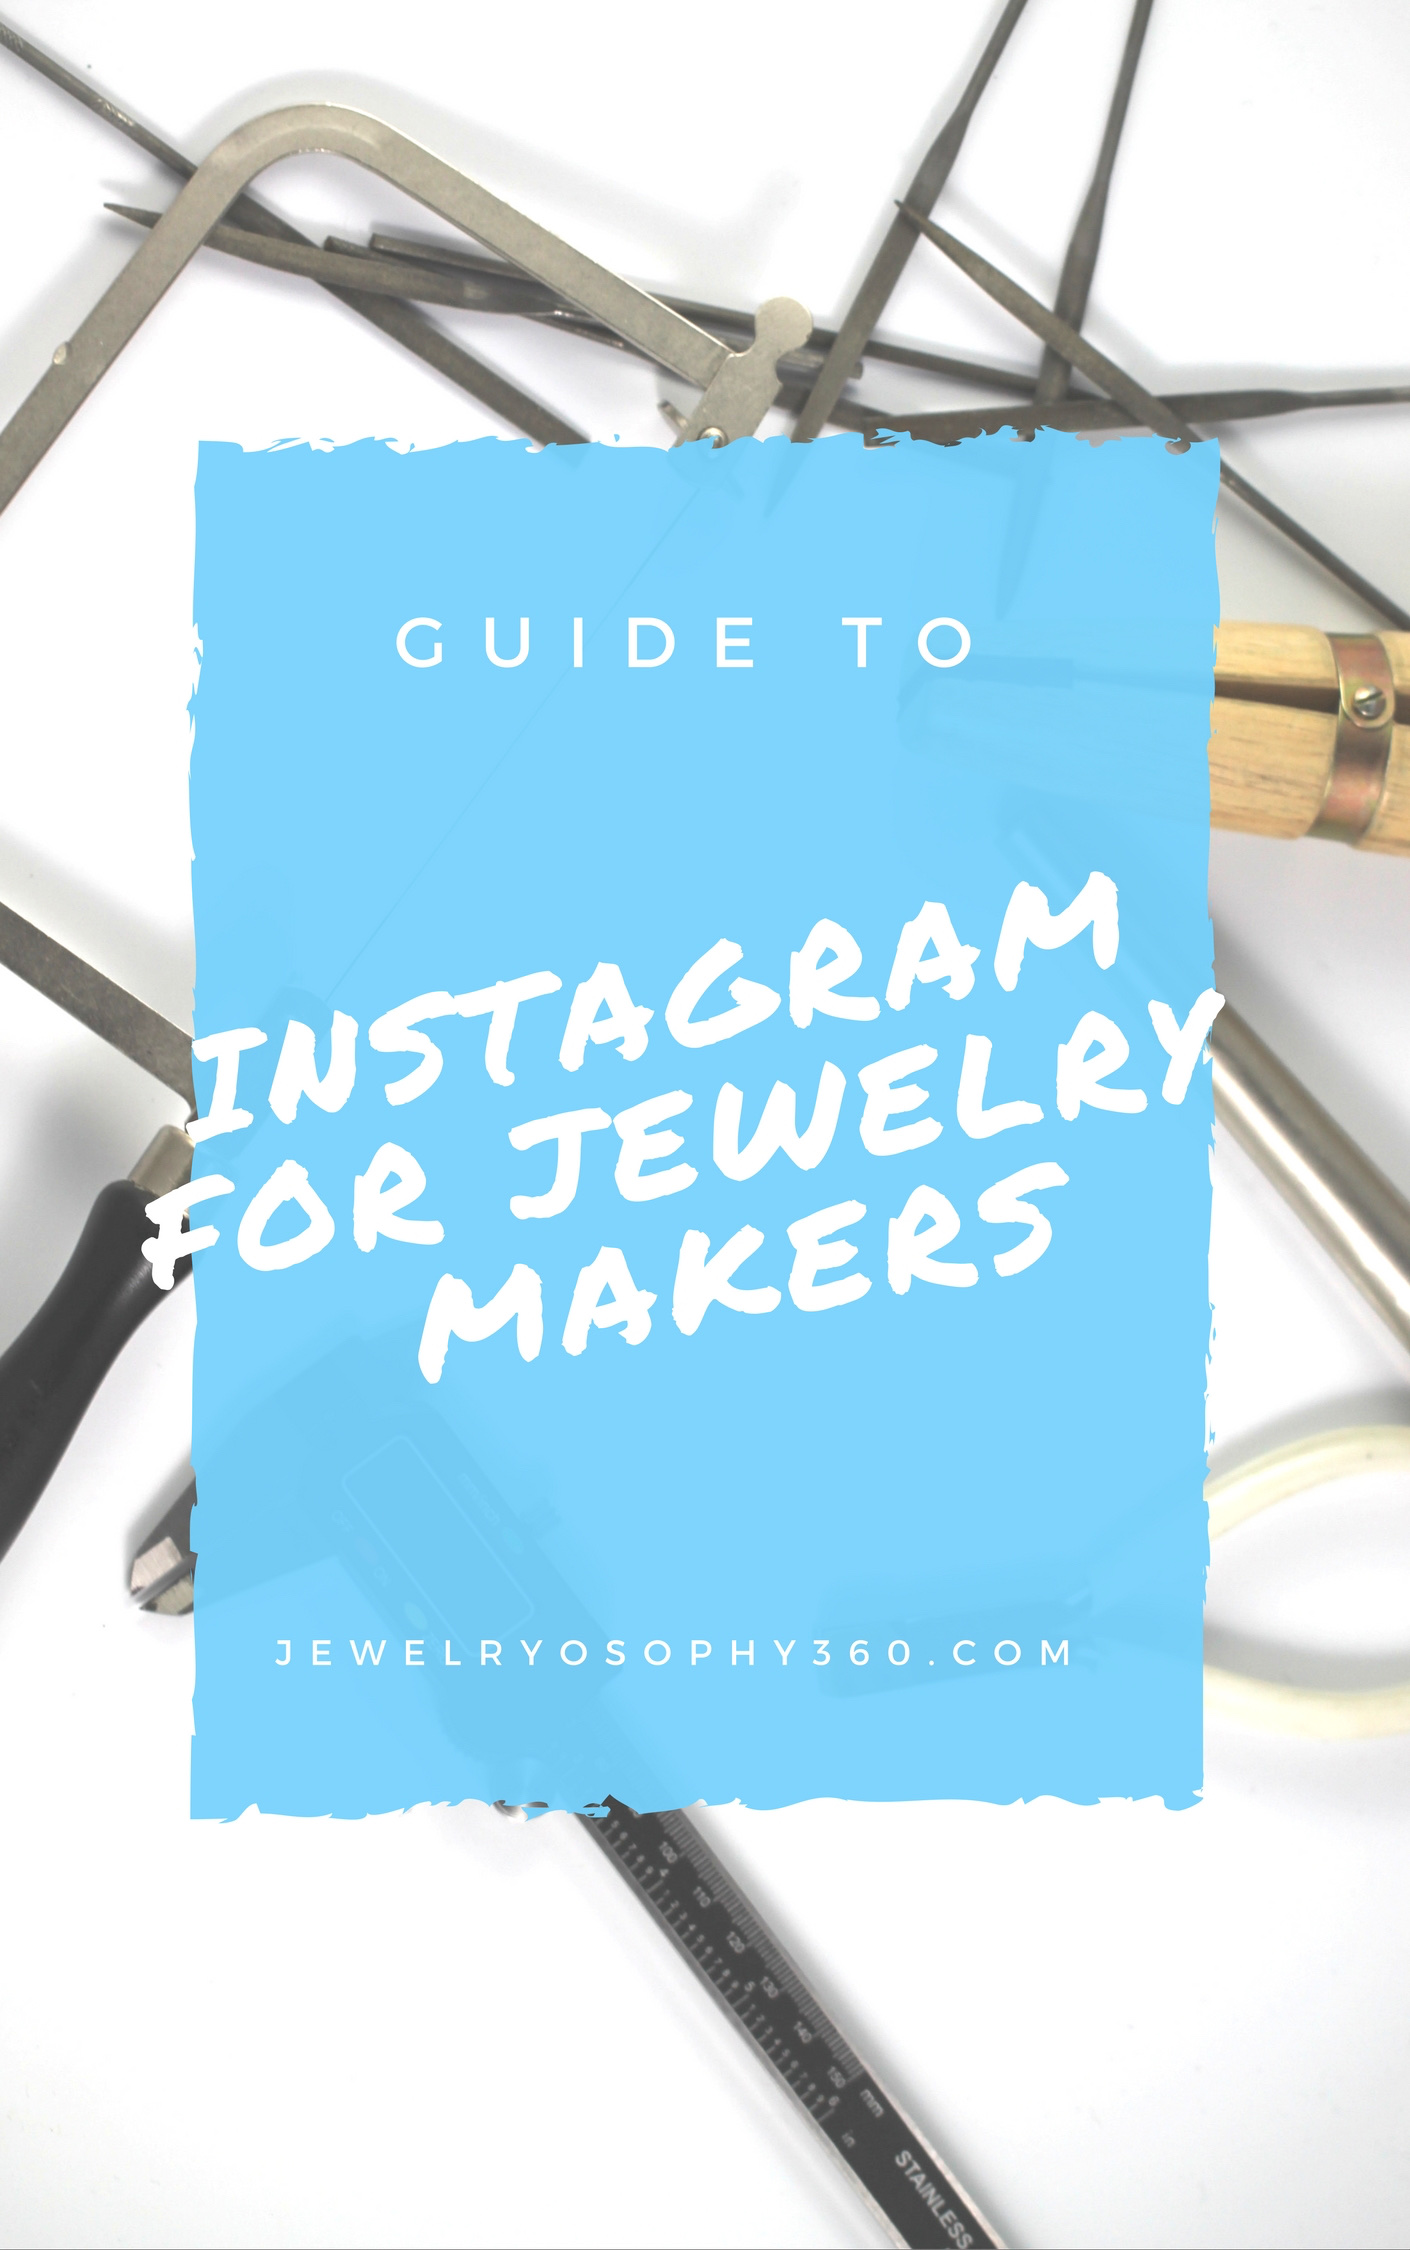 Instagram for Jewelry Makers